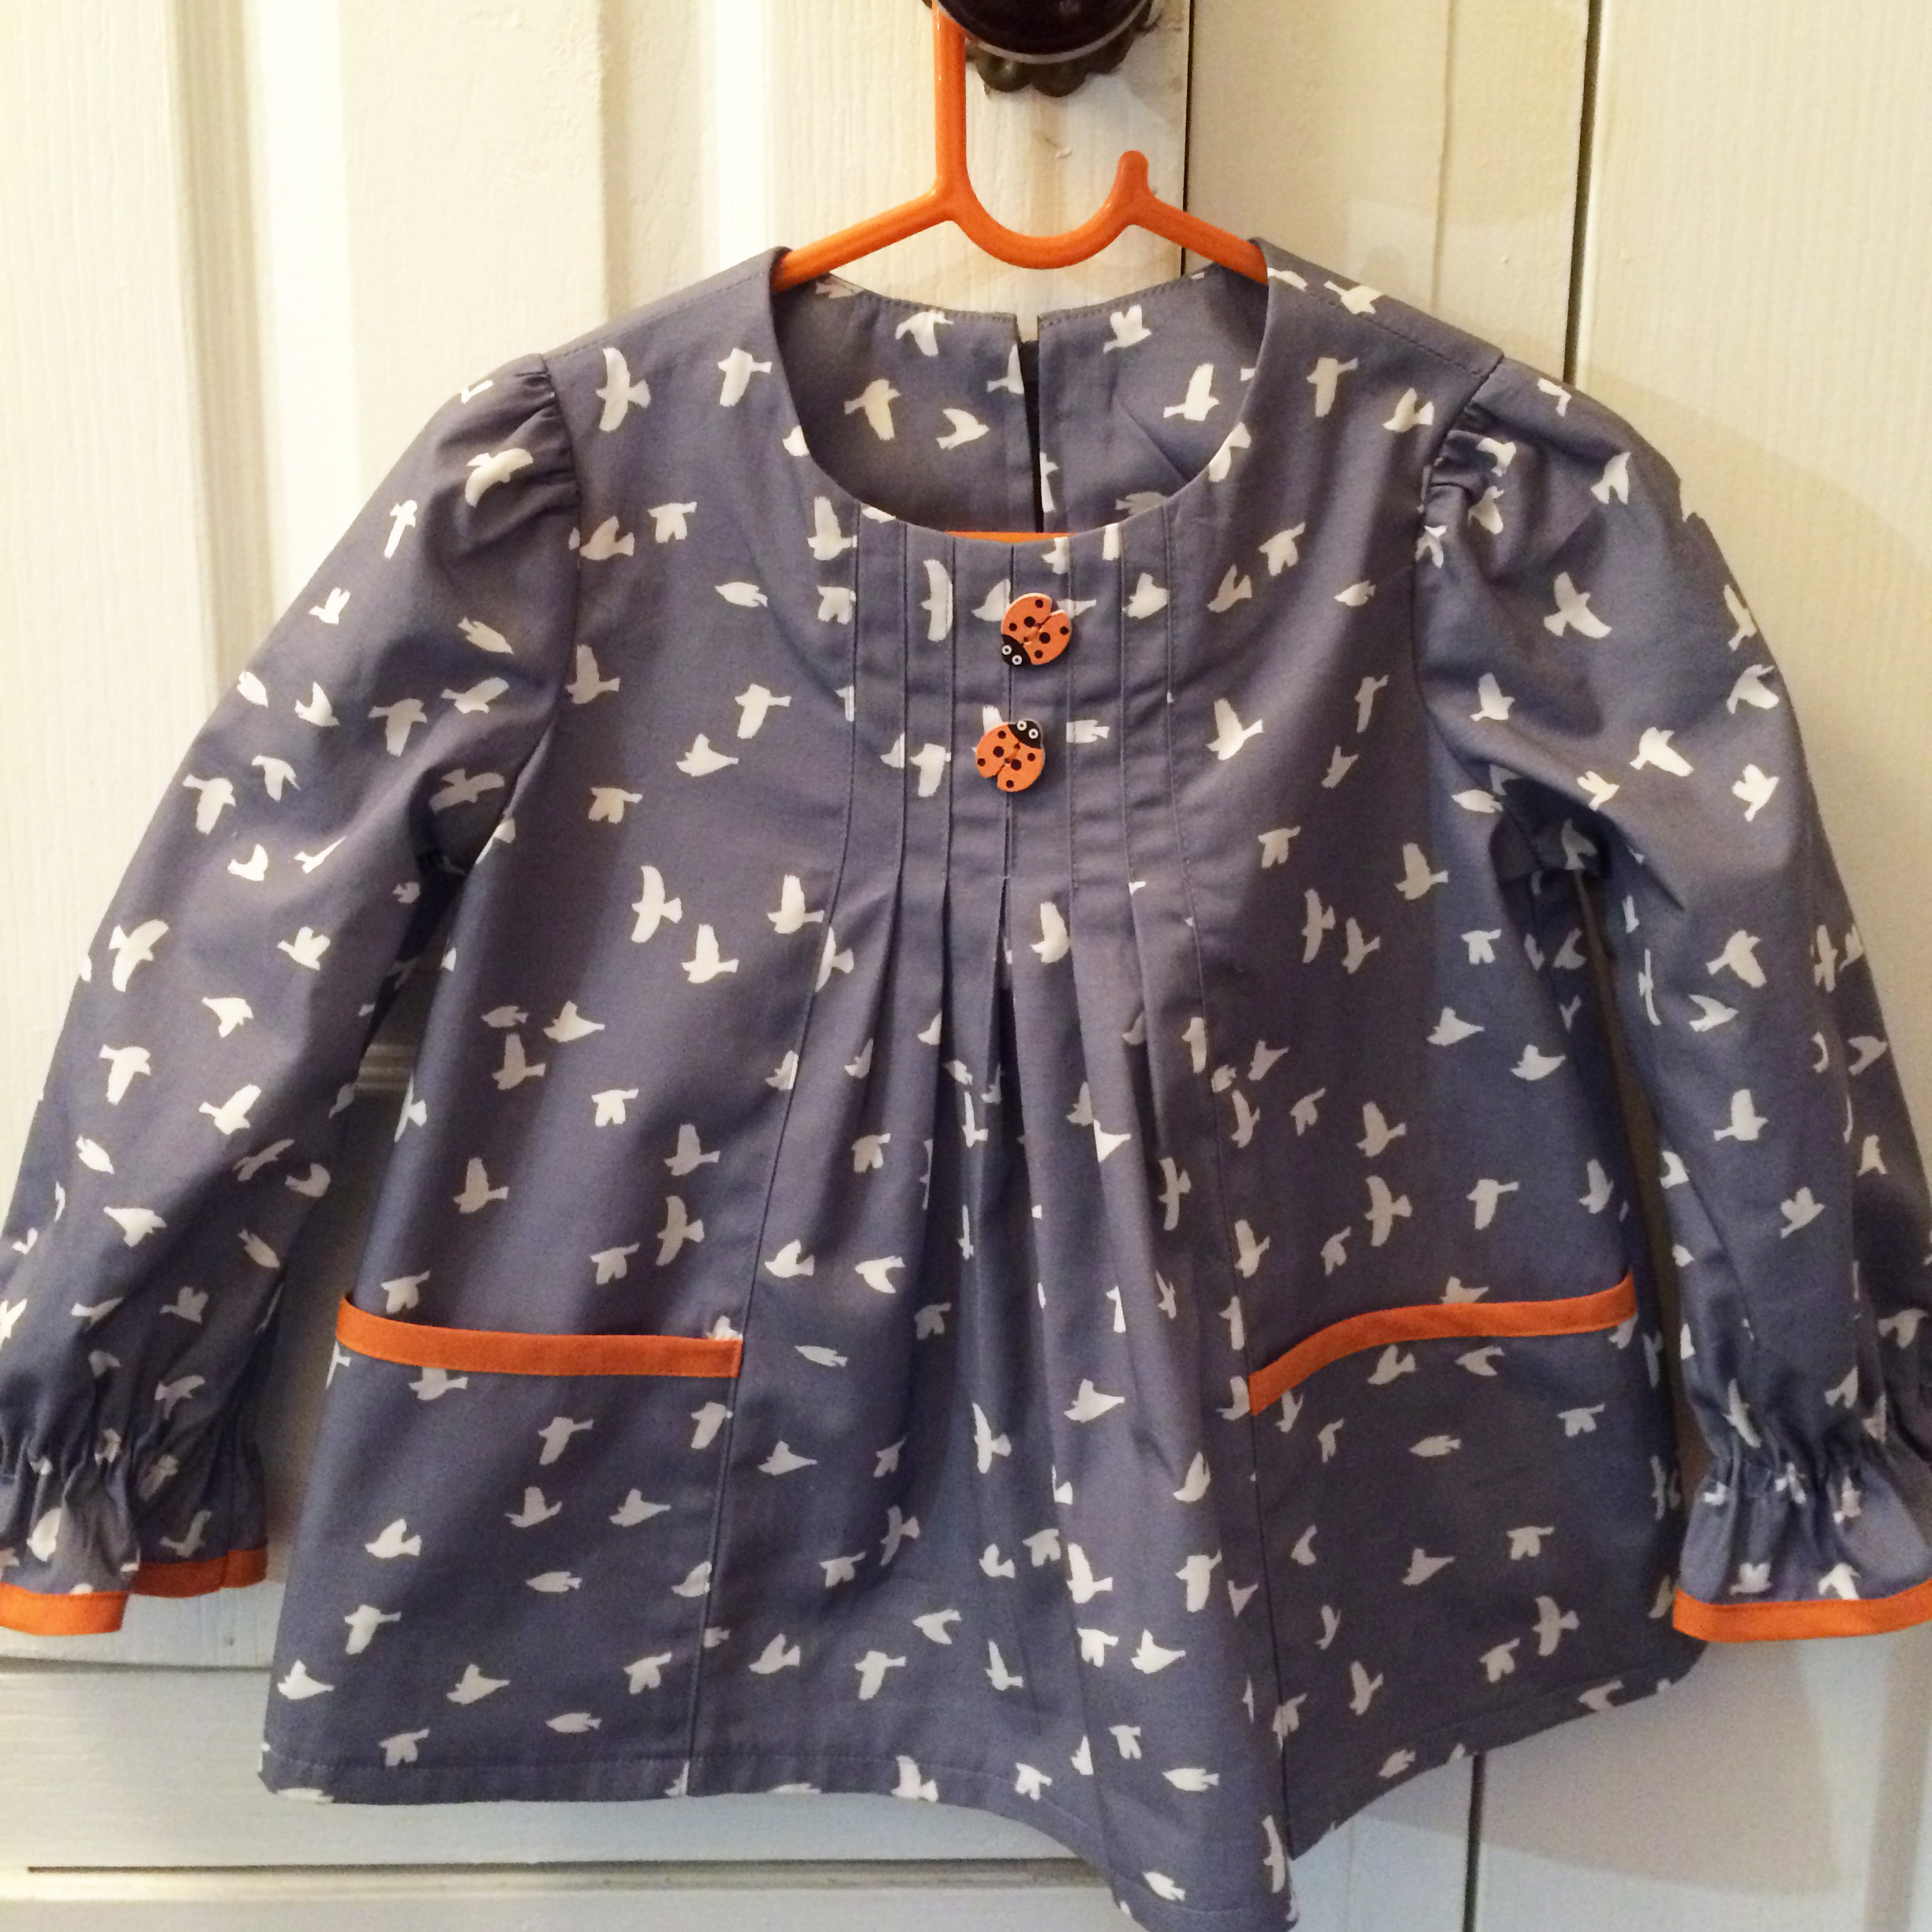 Girls dress, tunic or top sewing pattern -- Shelley Dress or Top